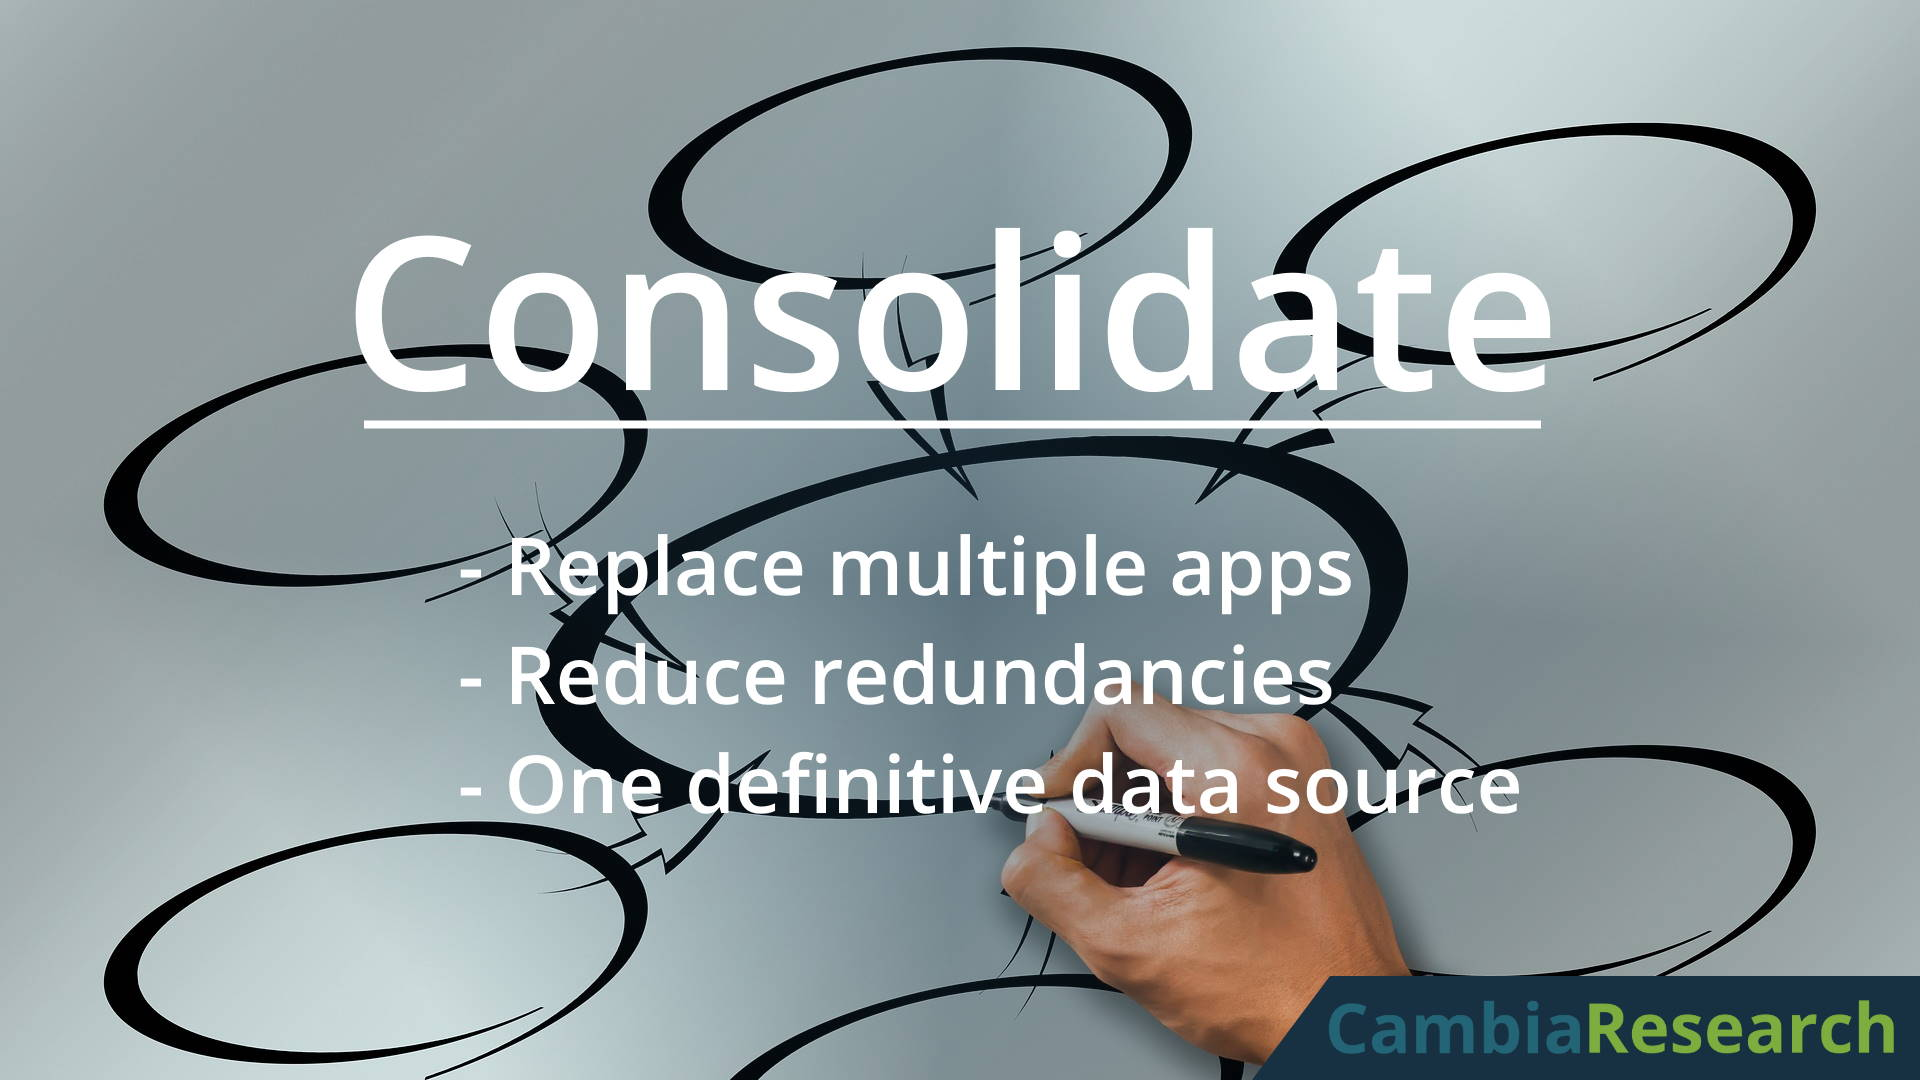 Consolidate existing systems and software with custom software solutions.